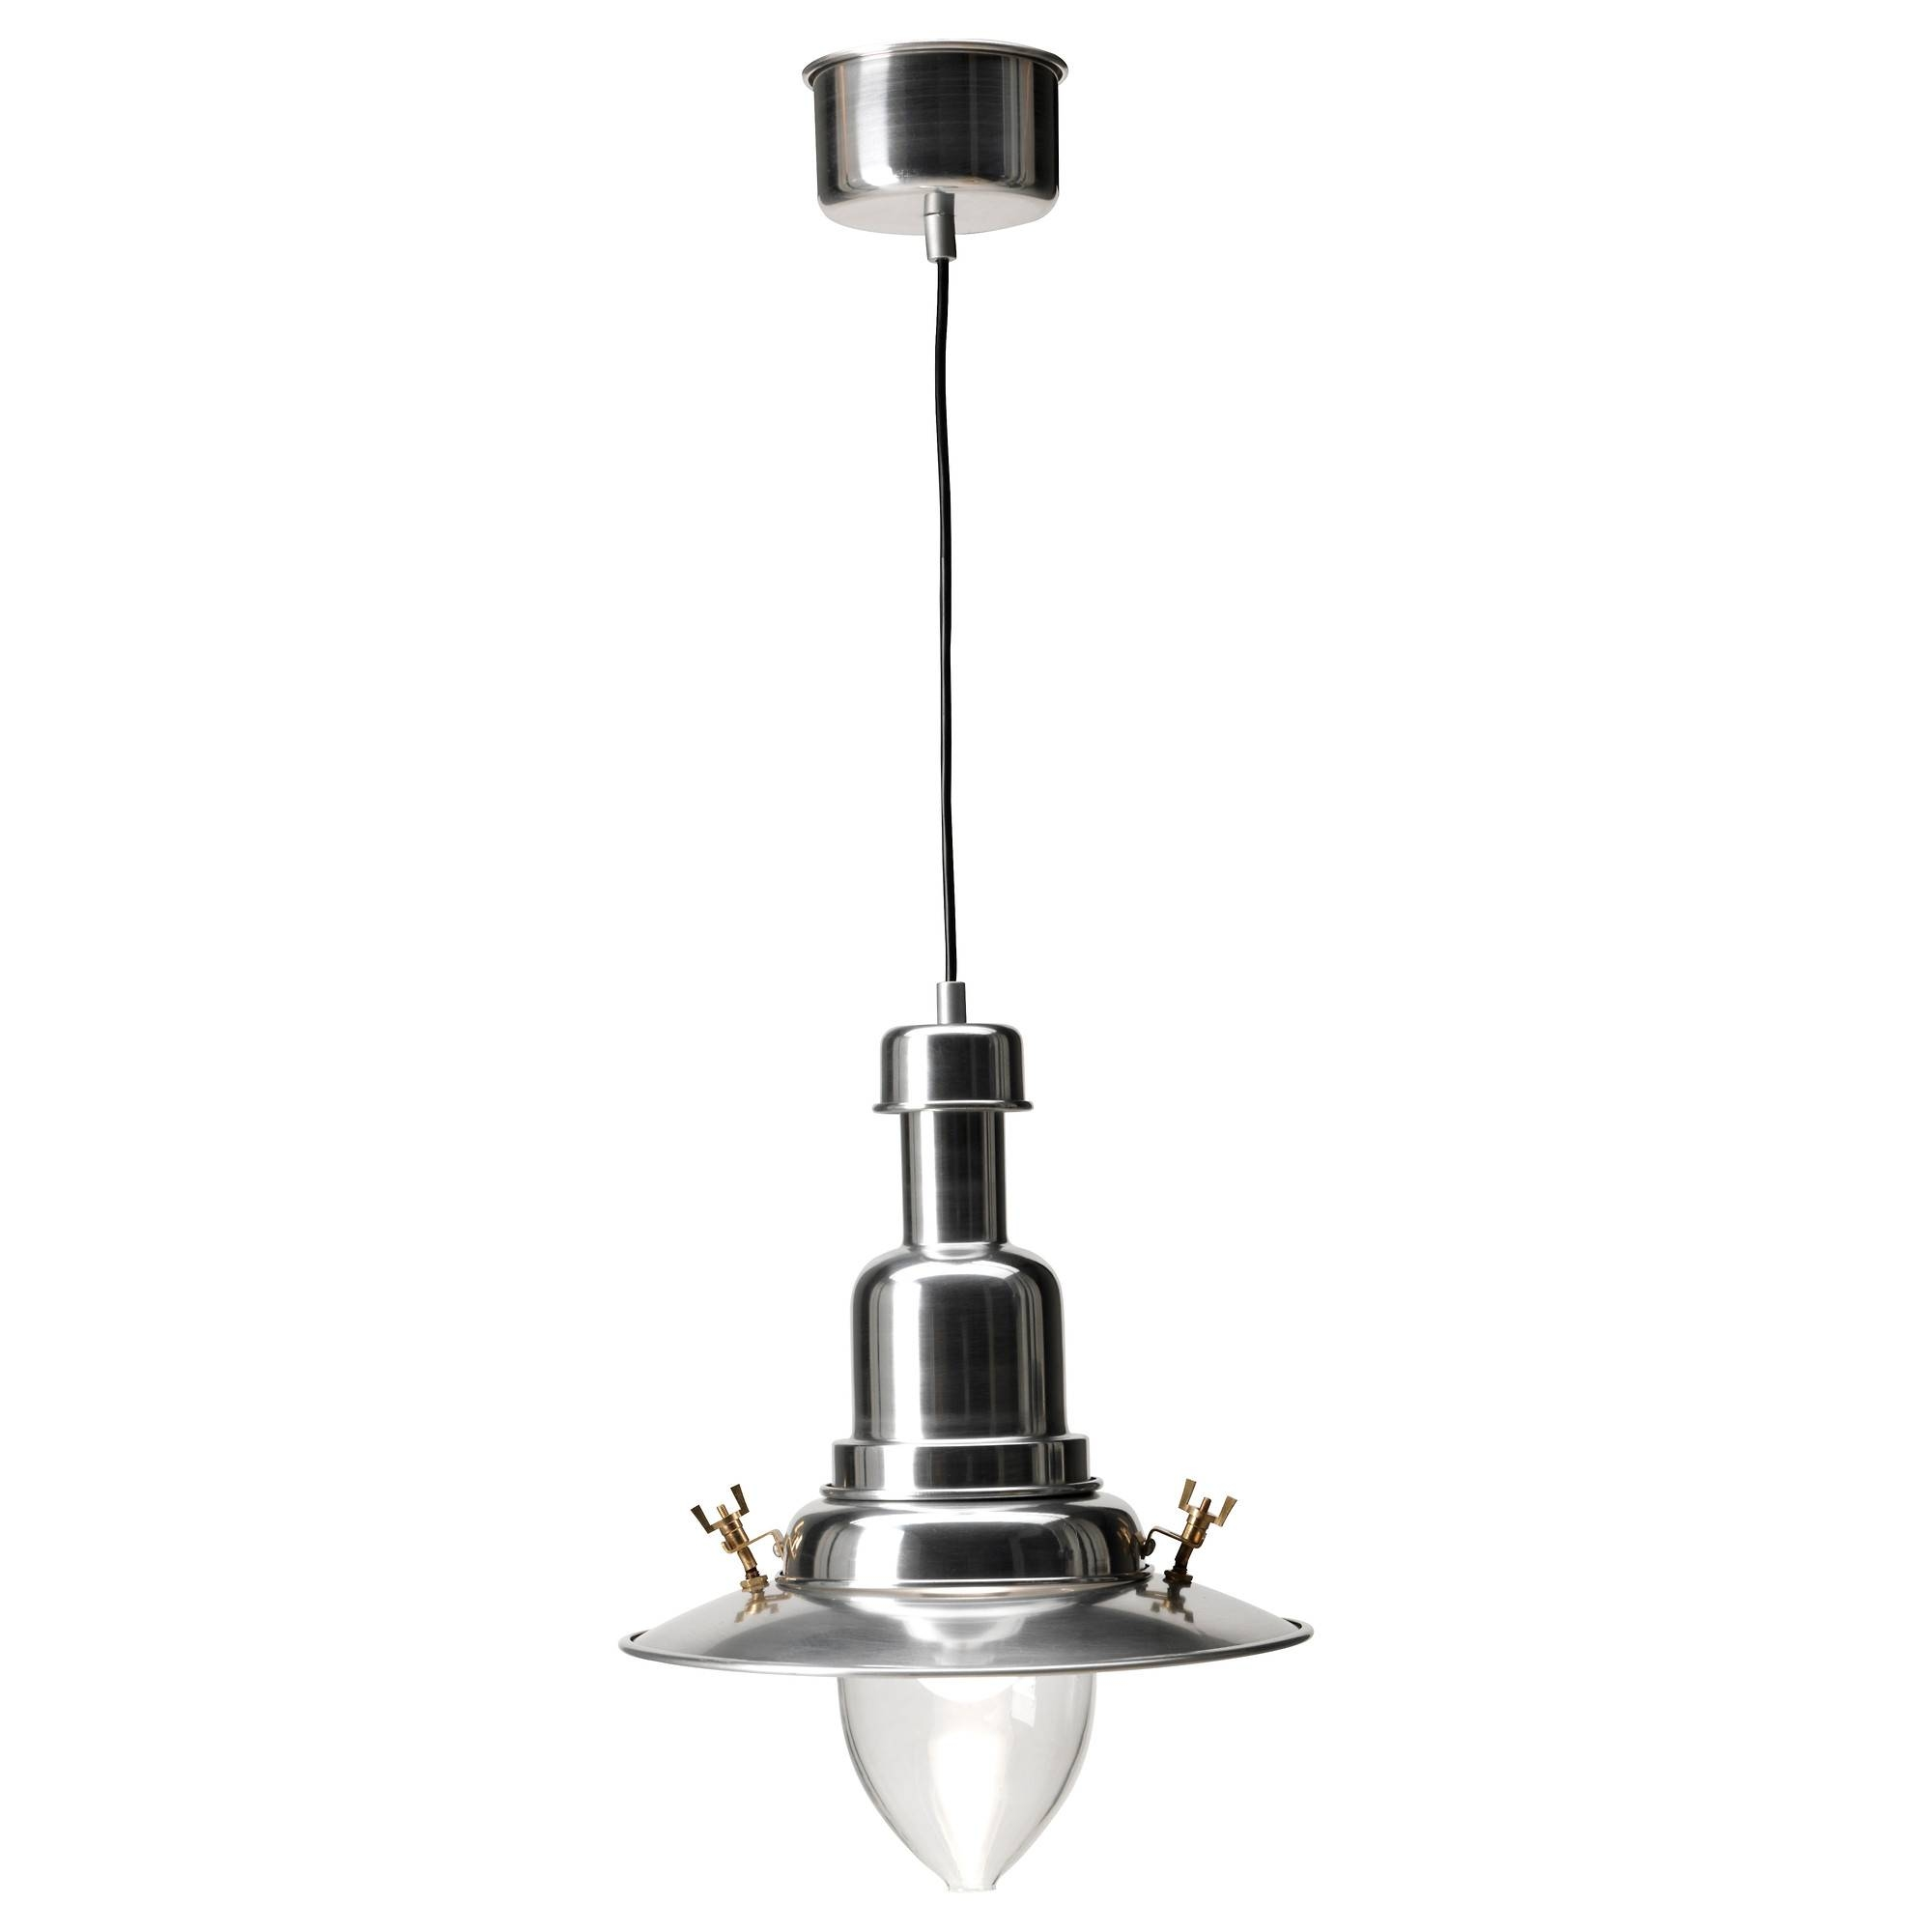 Ottava Pendant Lamp Aluminium - Ikea pertaining to Ikea Pendent Lights (Image 11 of 15)